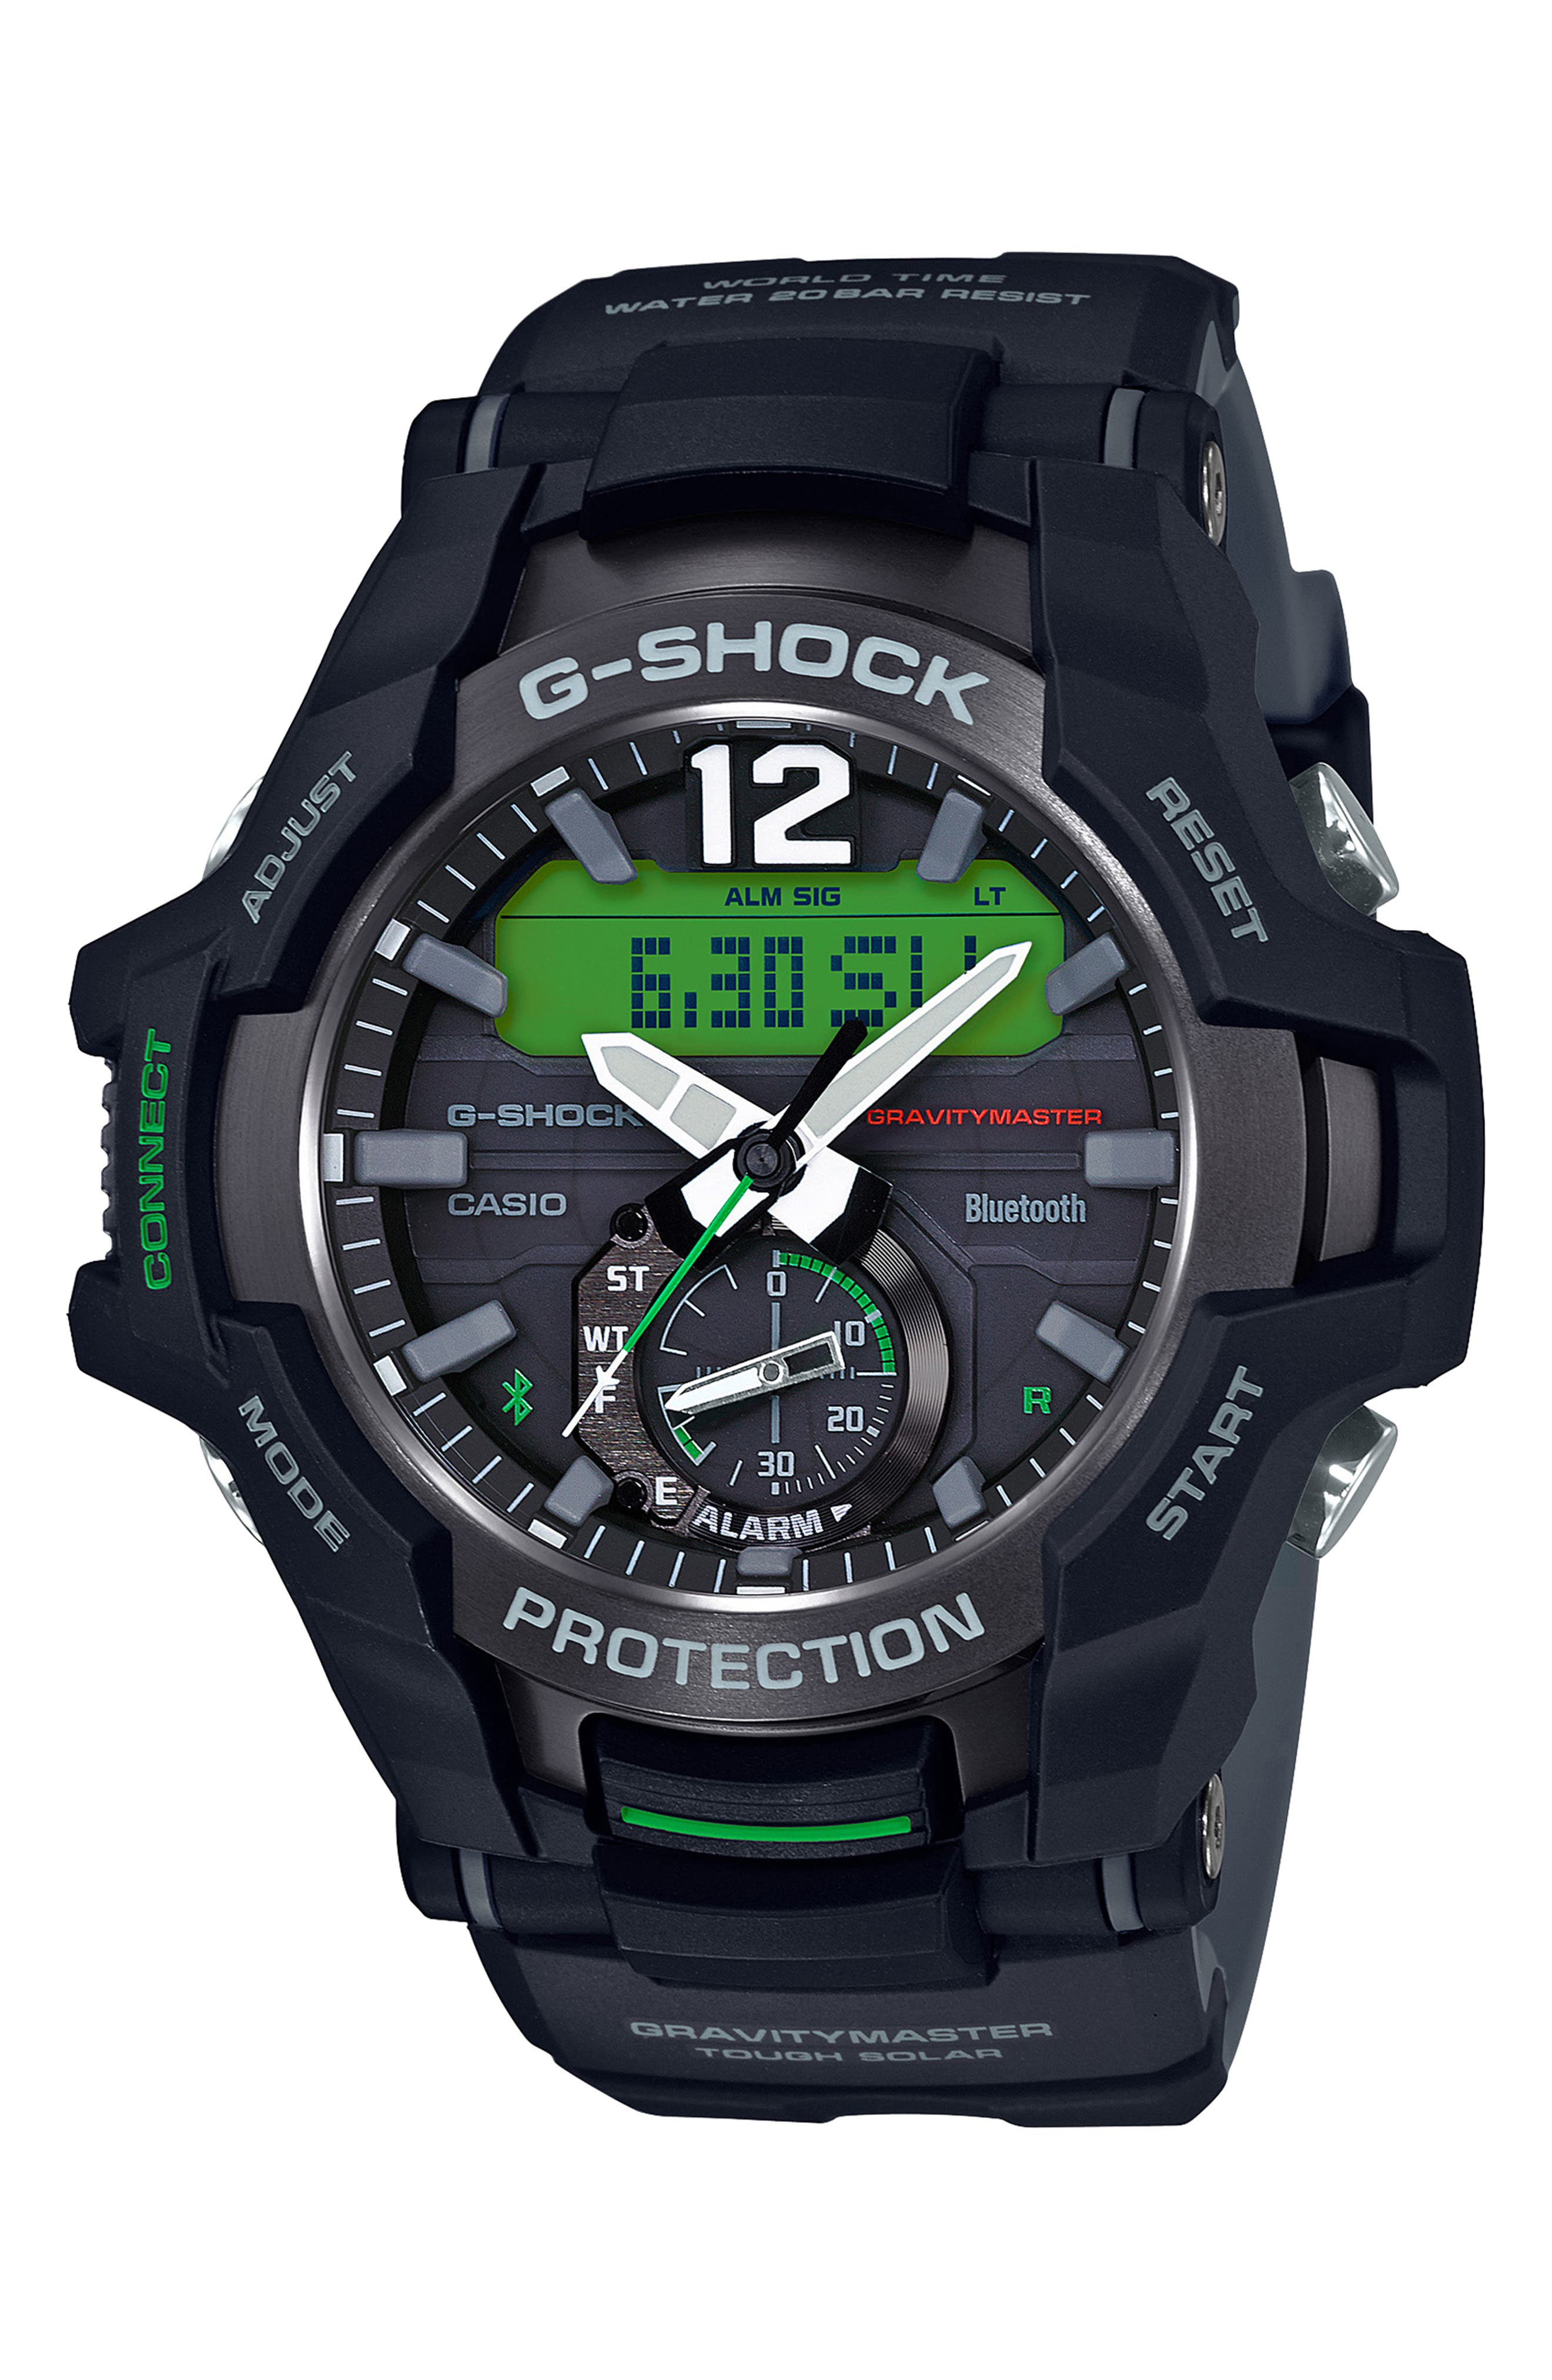 G-SHOCK BABY-G G-Shock GravityMaster Ana-Digi Bluetooth<sup>®</sup> Enabled Resin Strap Watch, 49mm, Main, color, BLACK MULTI